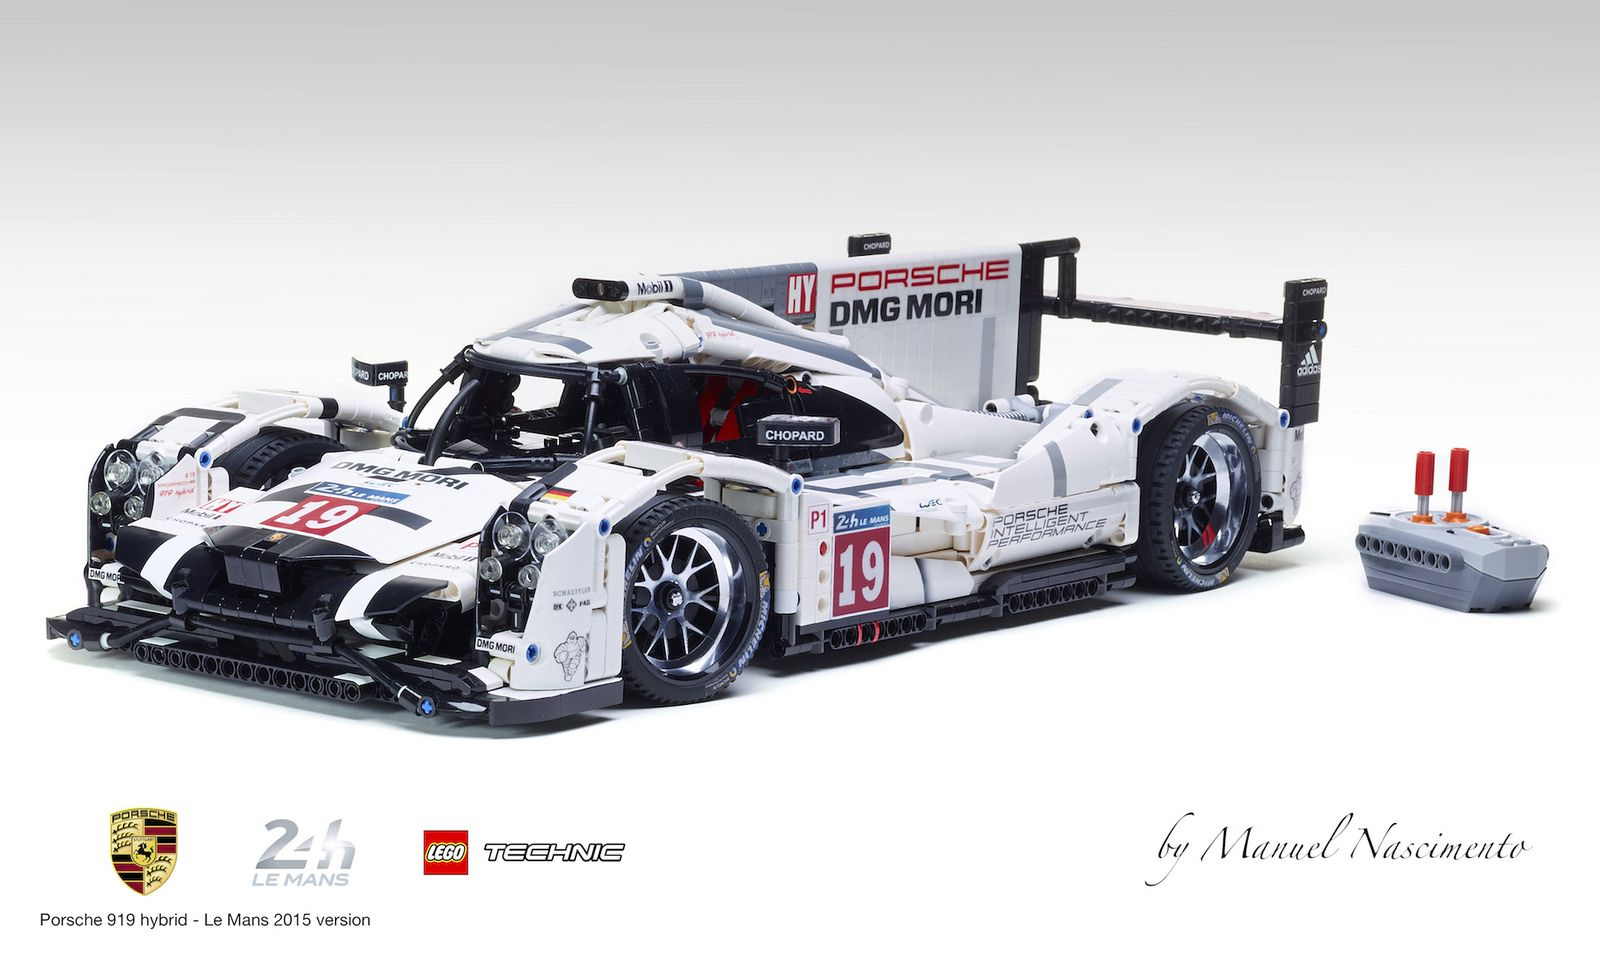 lego technic porsche 919 le mans 2015 v le mans lego technic and lego. Black Bedroom Furniture Sets. Home Design Ideas